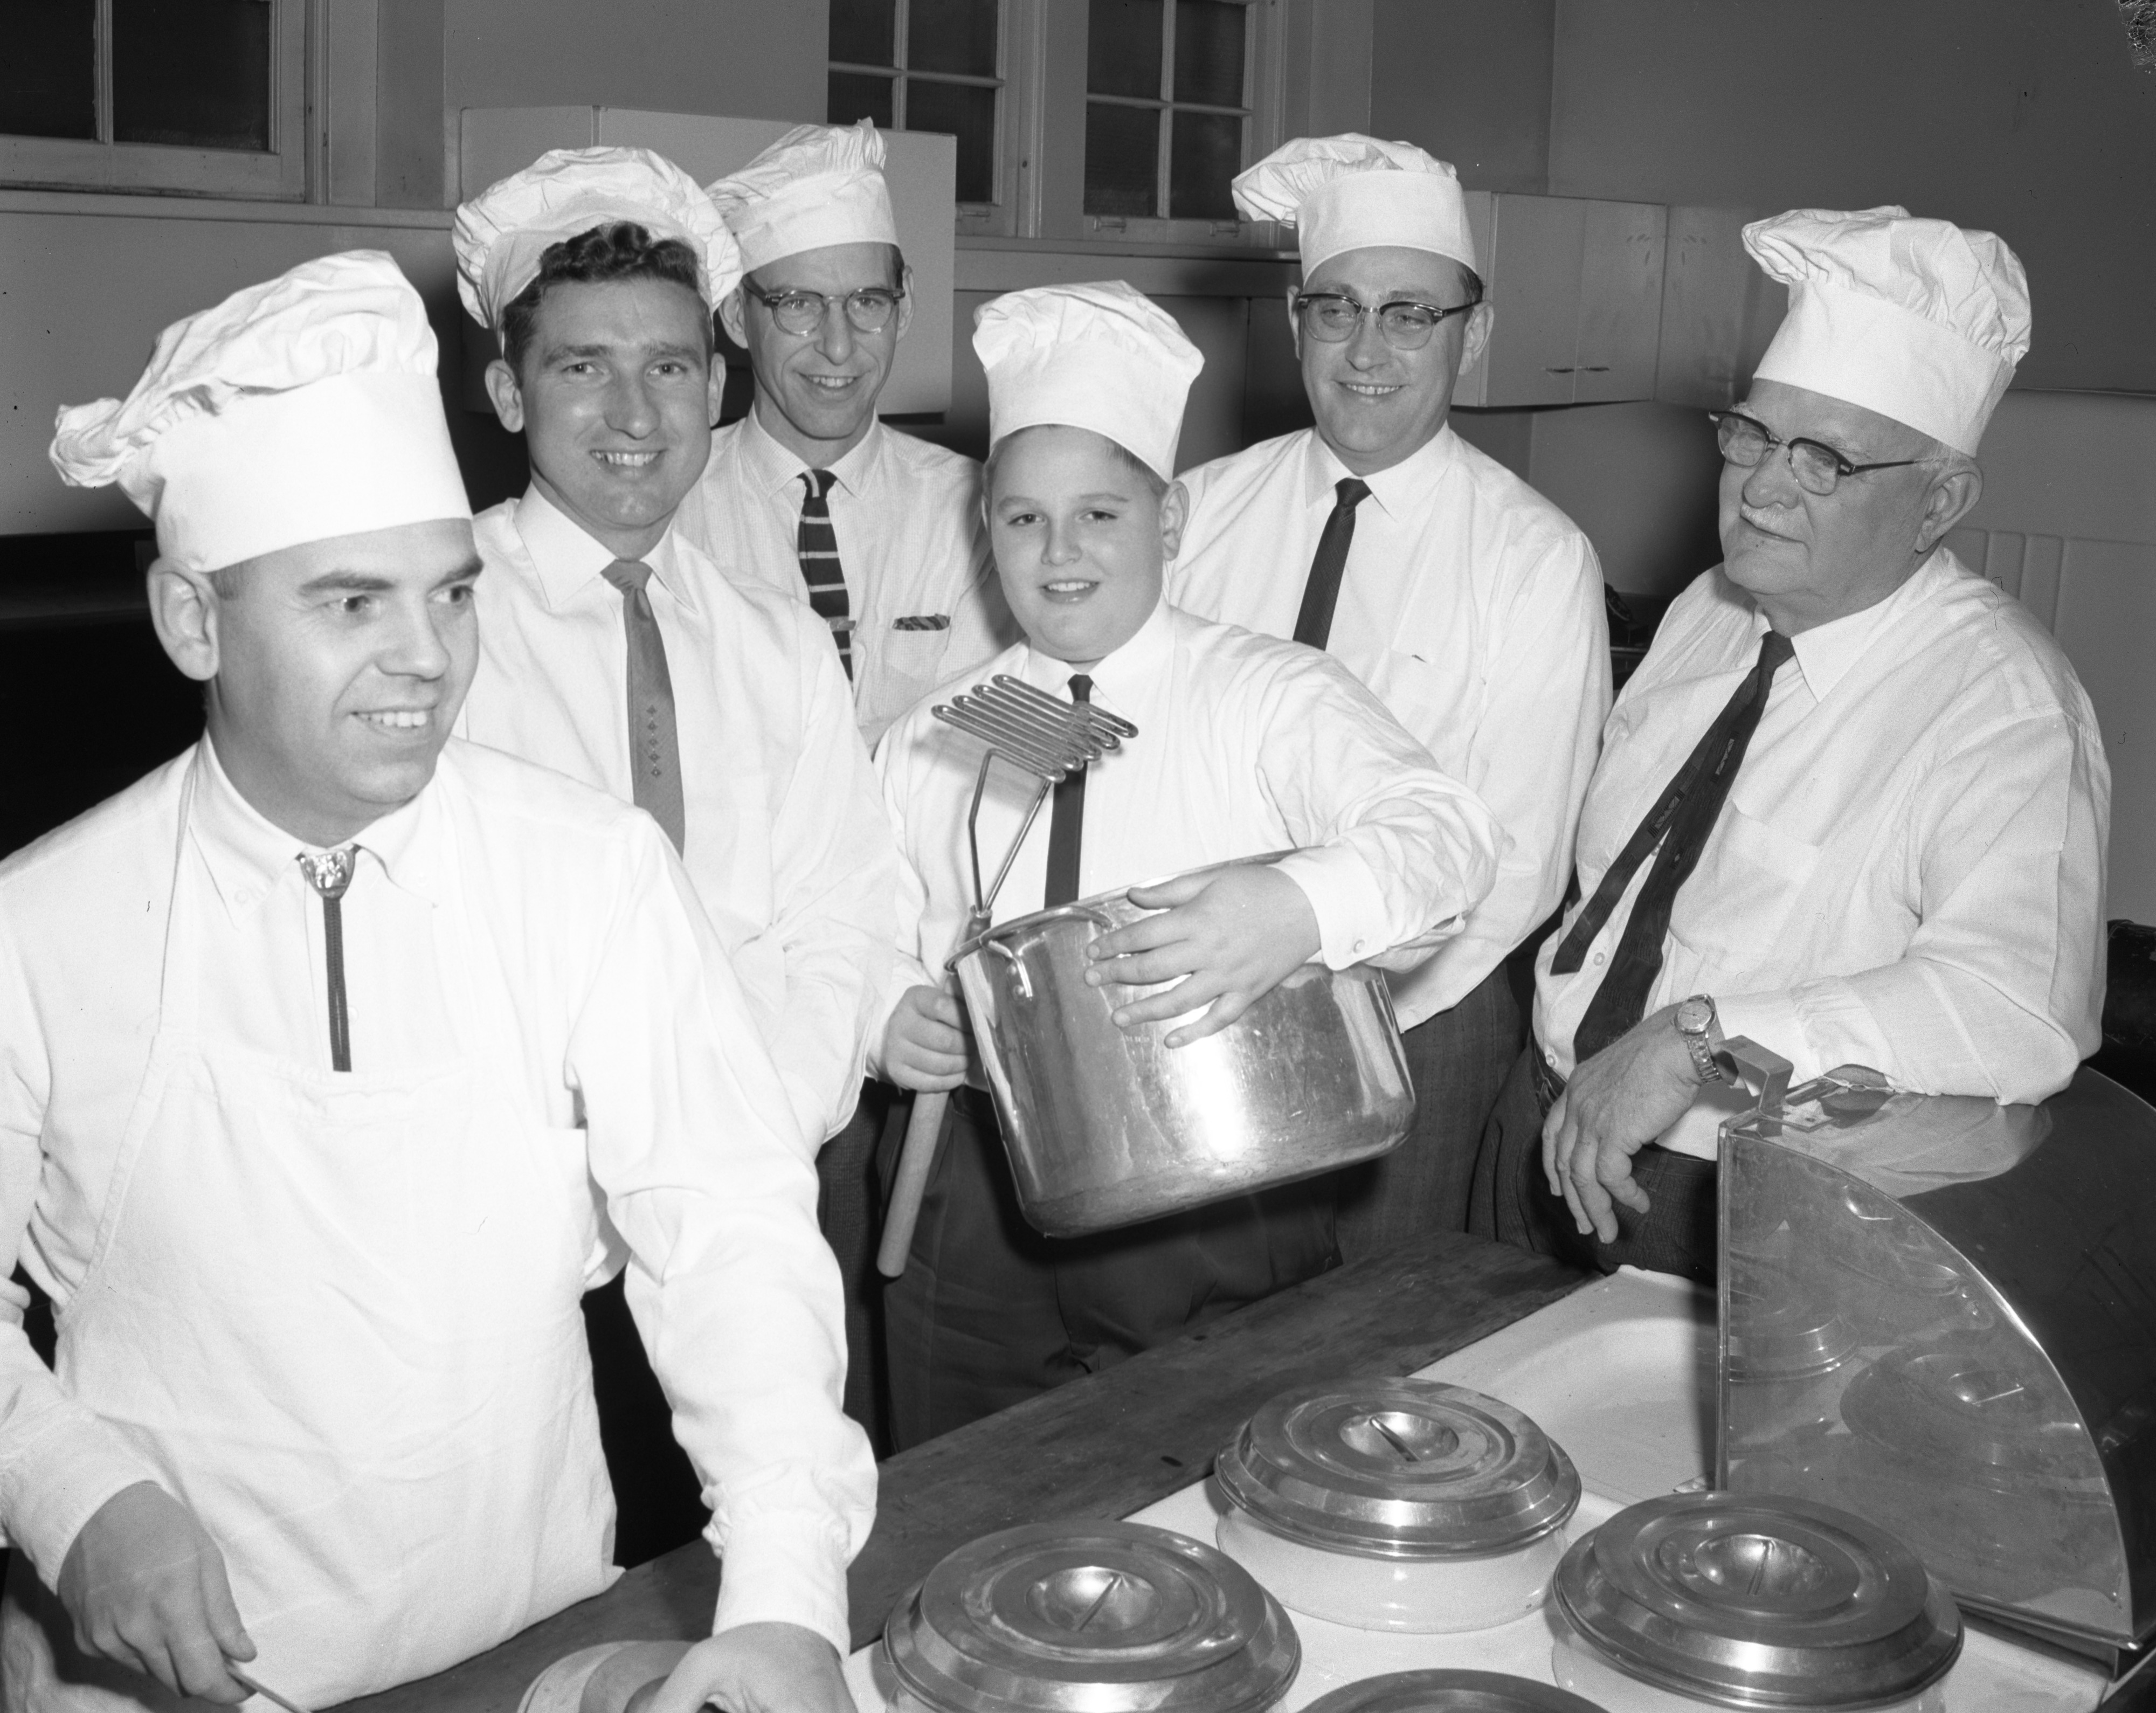 Men of St. Luke's Episcopal Church to Serve Food at Annual Smorgasbord, August 1960 image